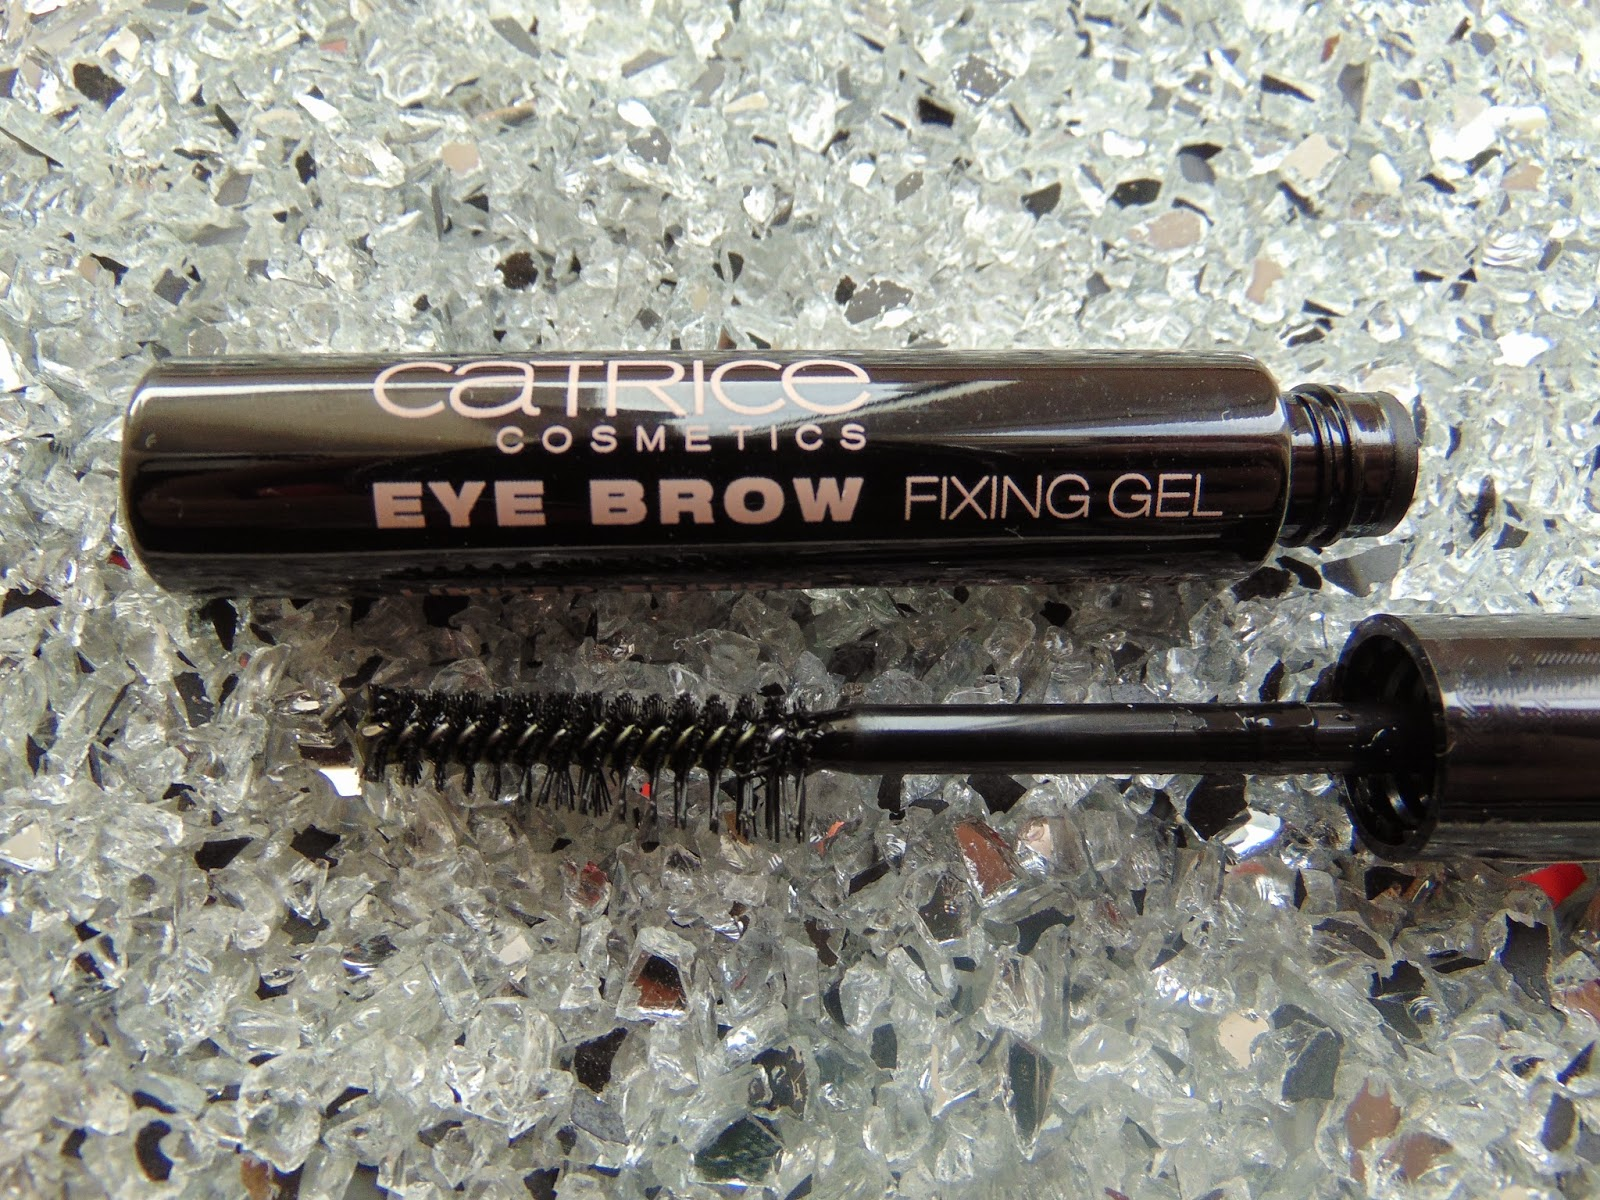 Catrice Eye Brow Fixing Gel - www.annitschkasblog.de